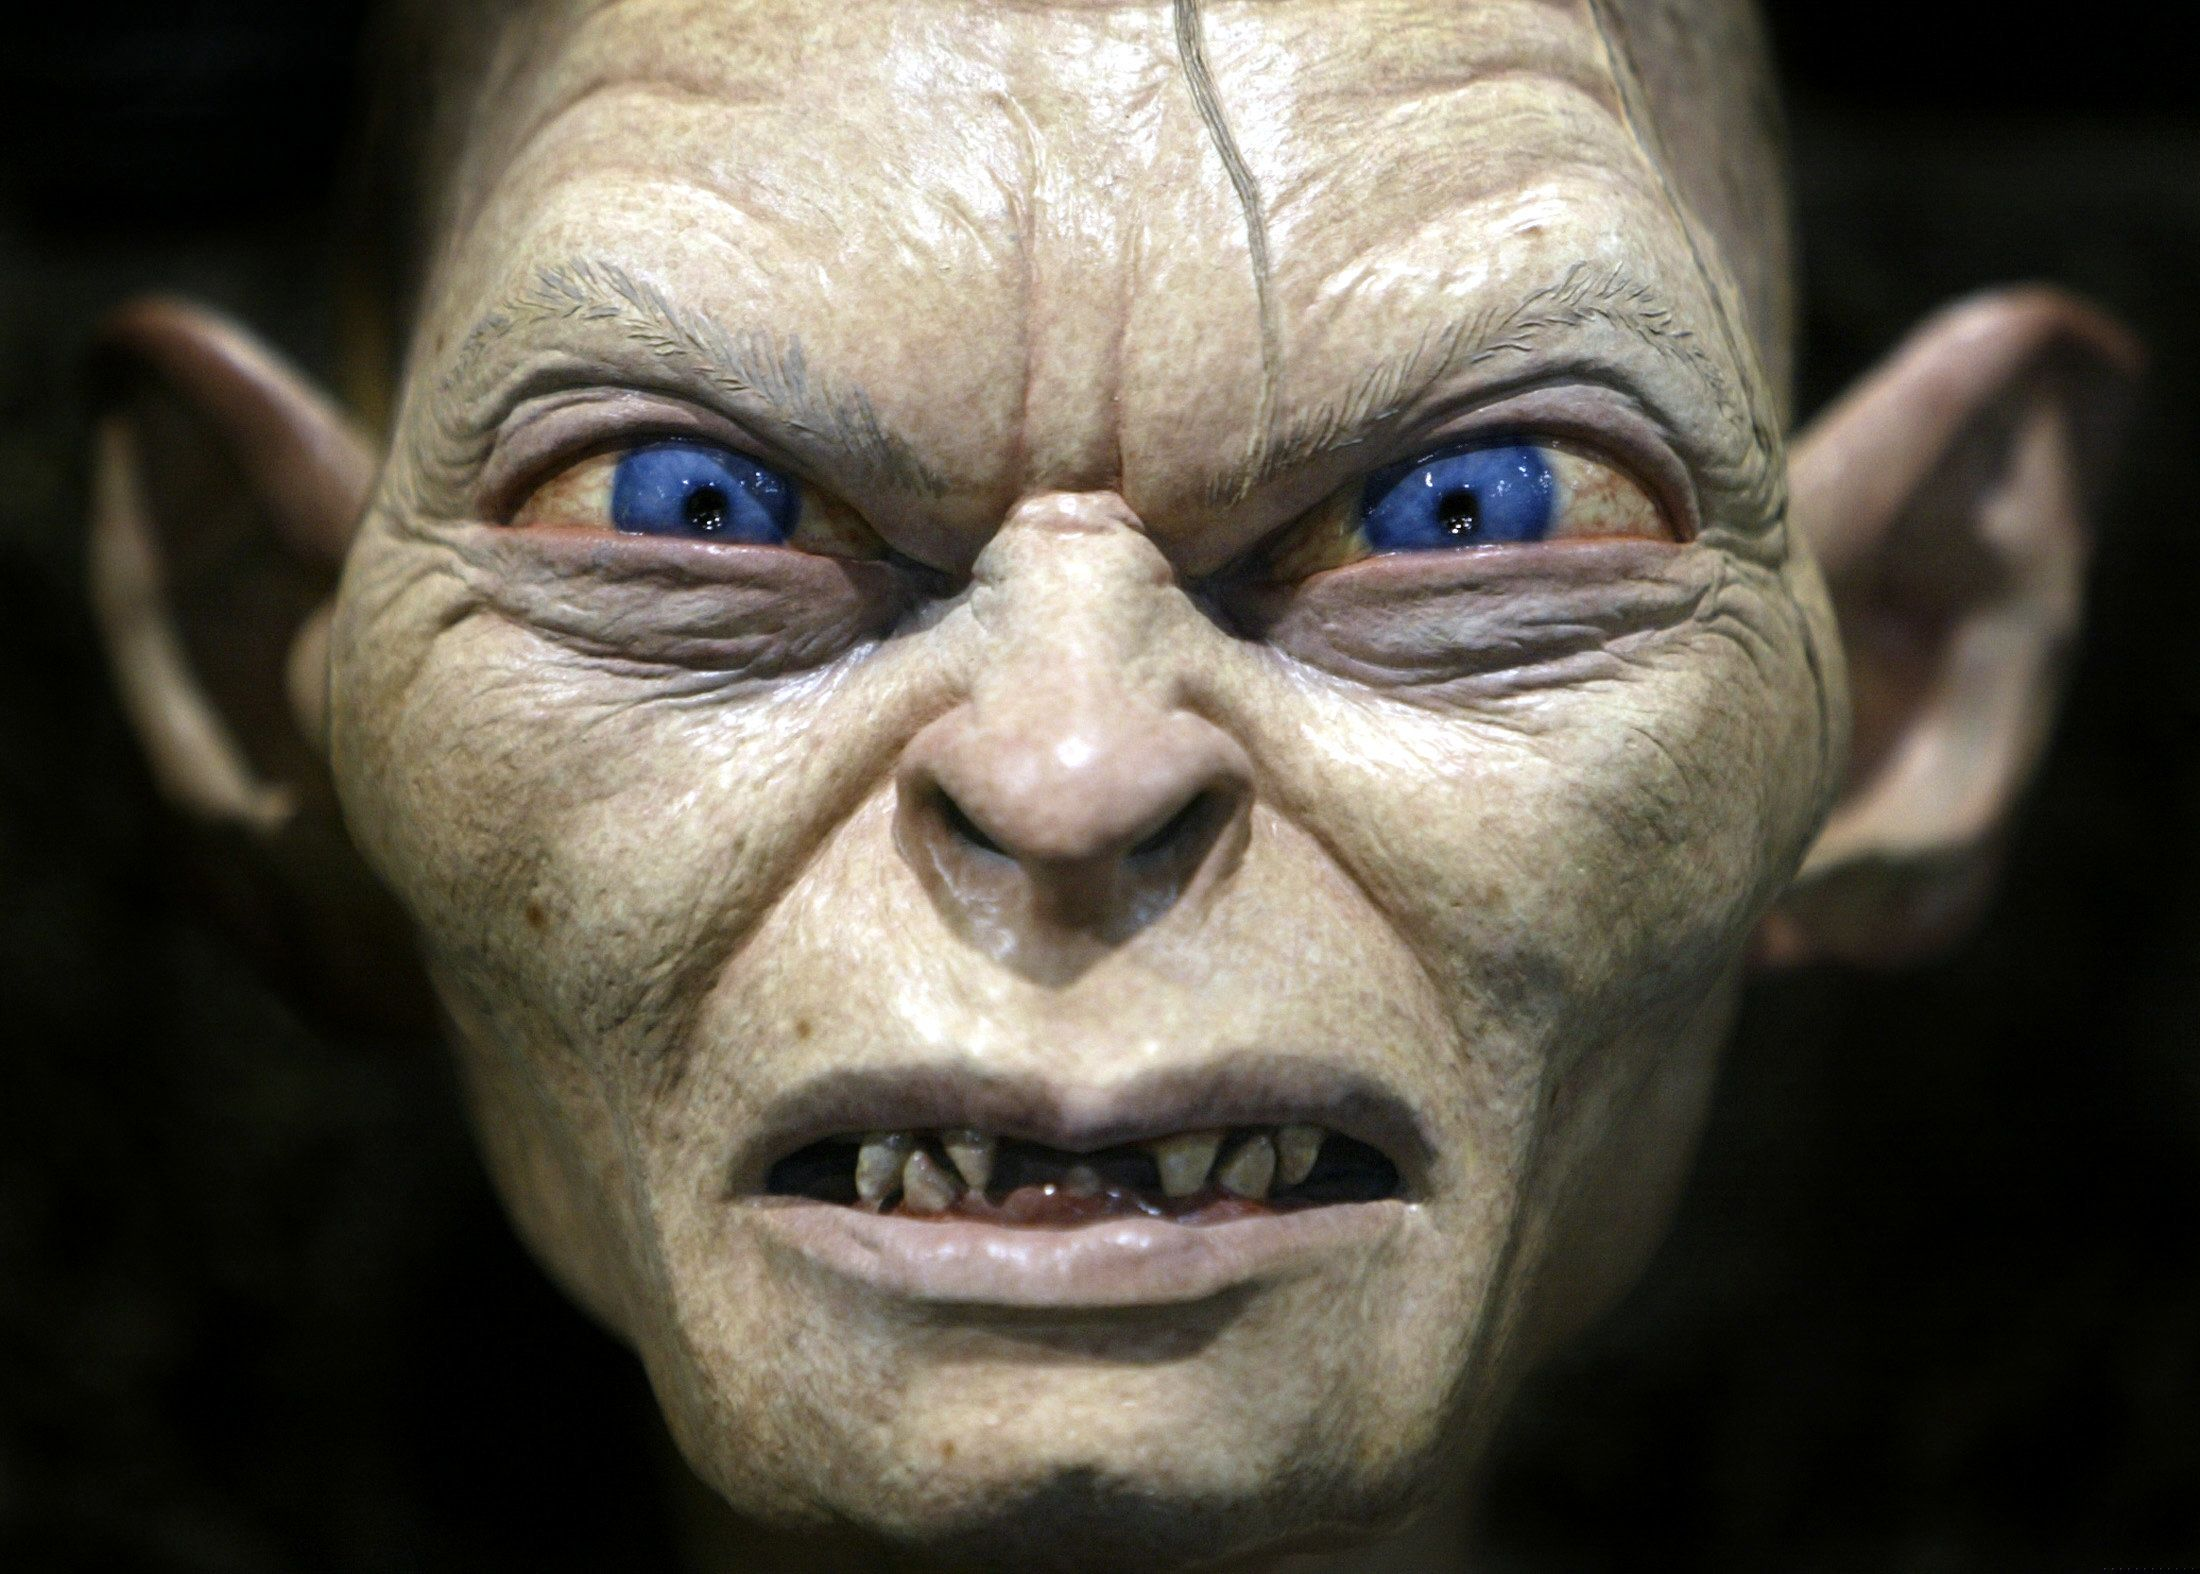 Gollum, a special effects creature from the movie 'Lord of the Rings', is on display at the annual four-day Comic Con convention in San Diego, July 18, 2003. Thousands of fans from around the world gather to peruse a collection of comic books and industry related sci-fi, video and motion picture fantasy products. REUTERS/Mike Blake PP03070072  MB